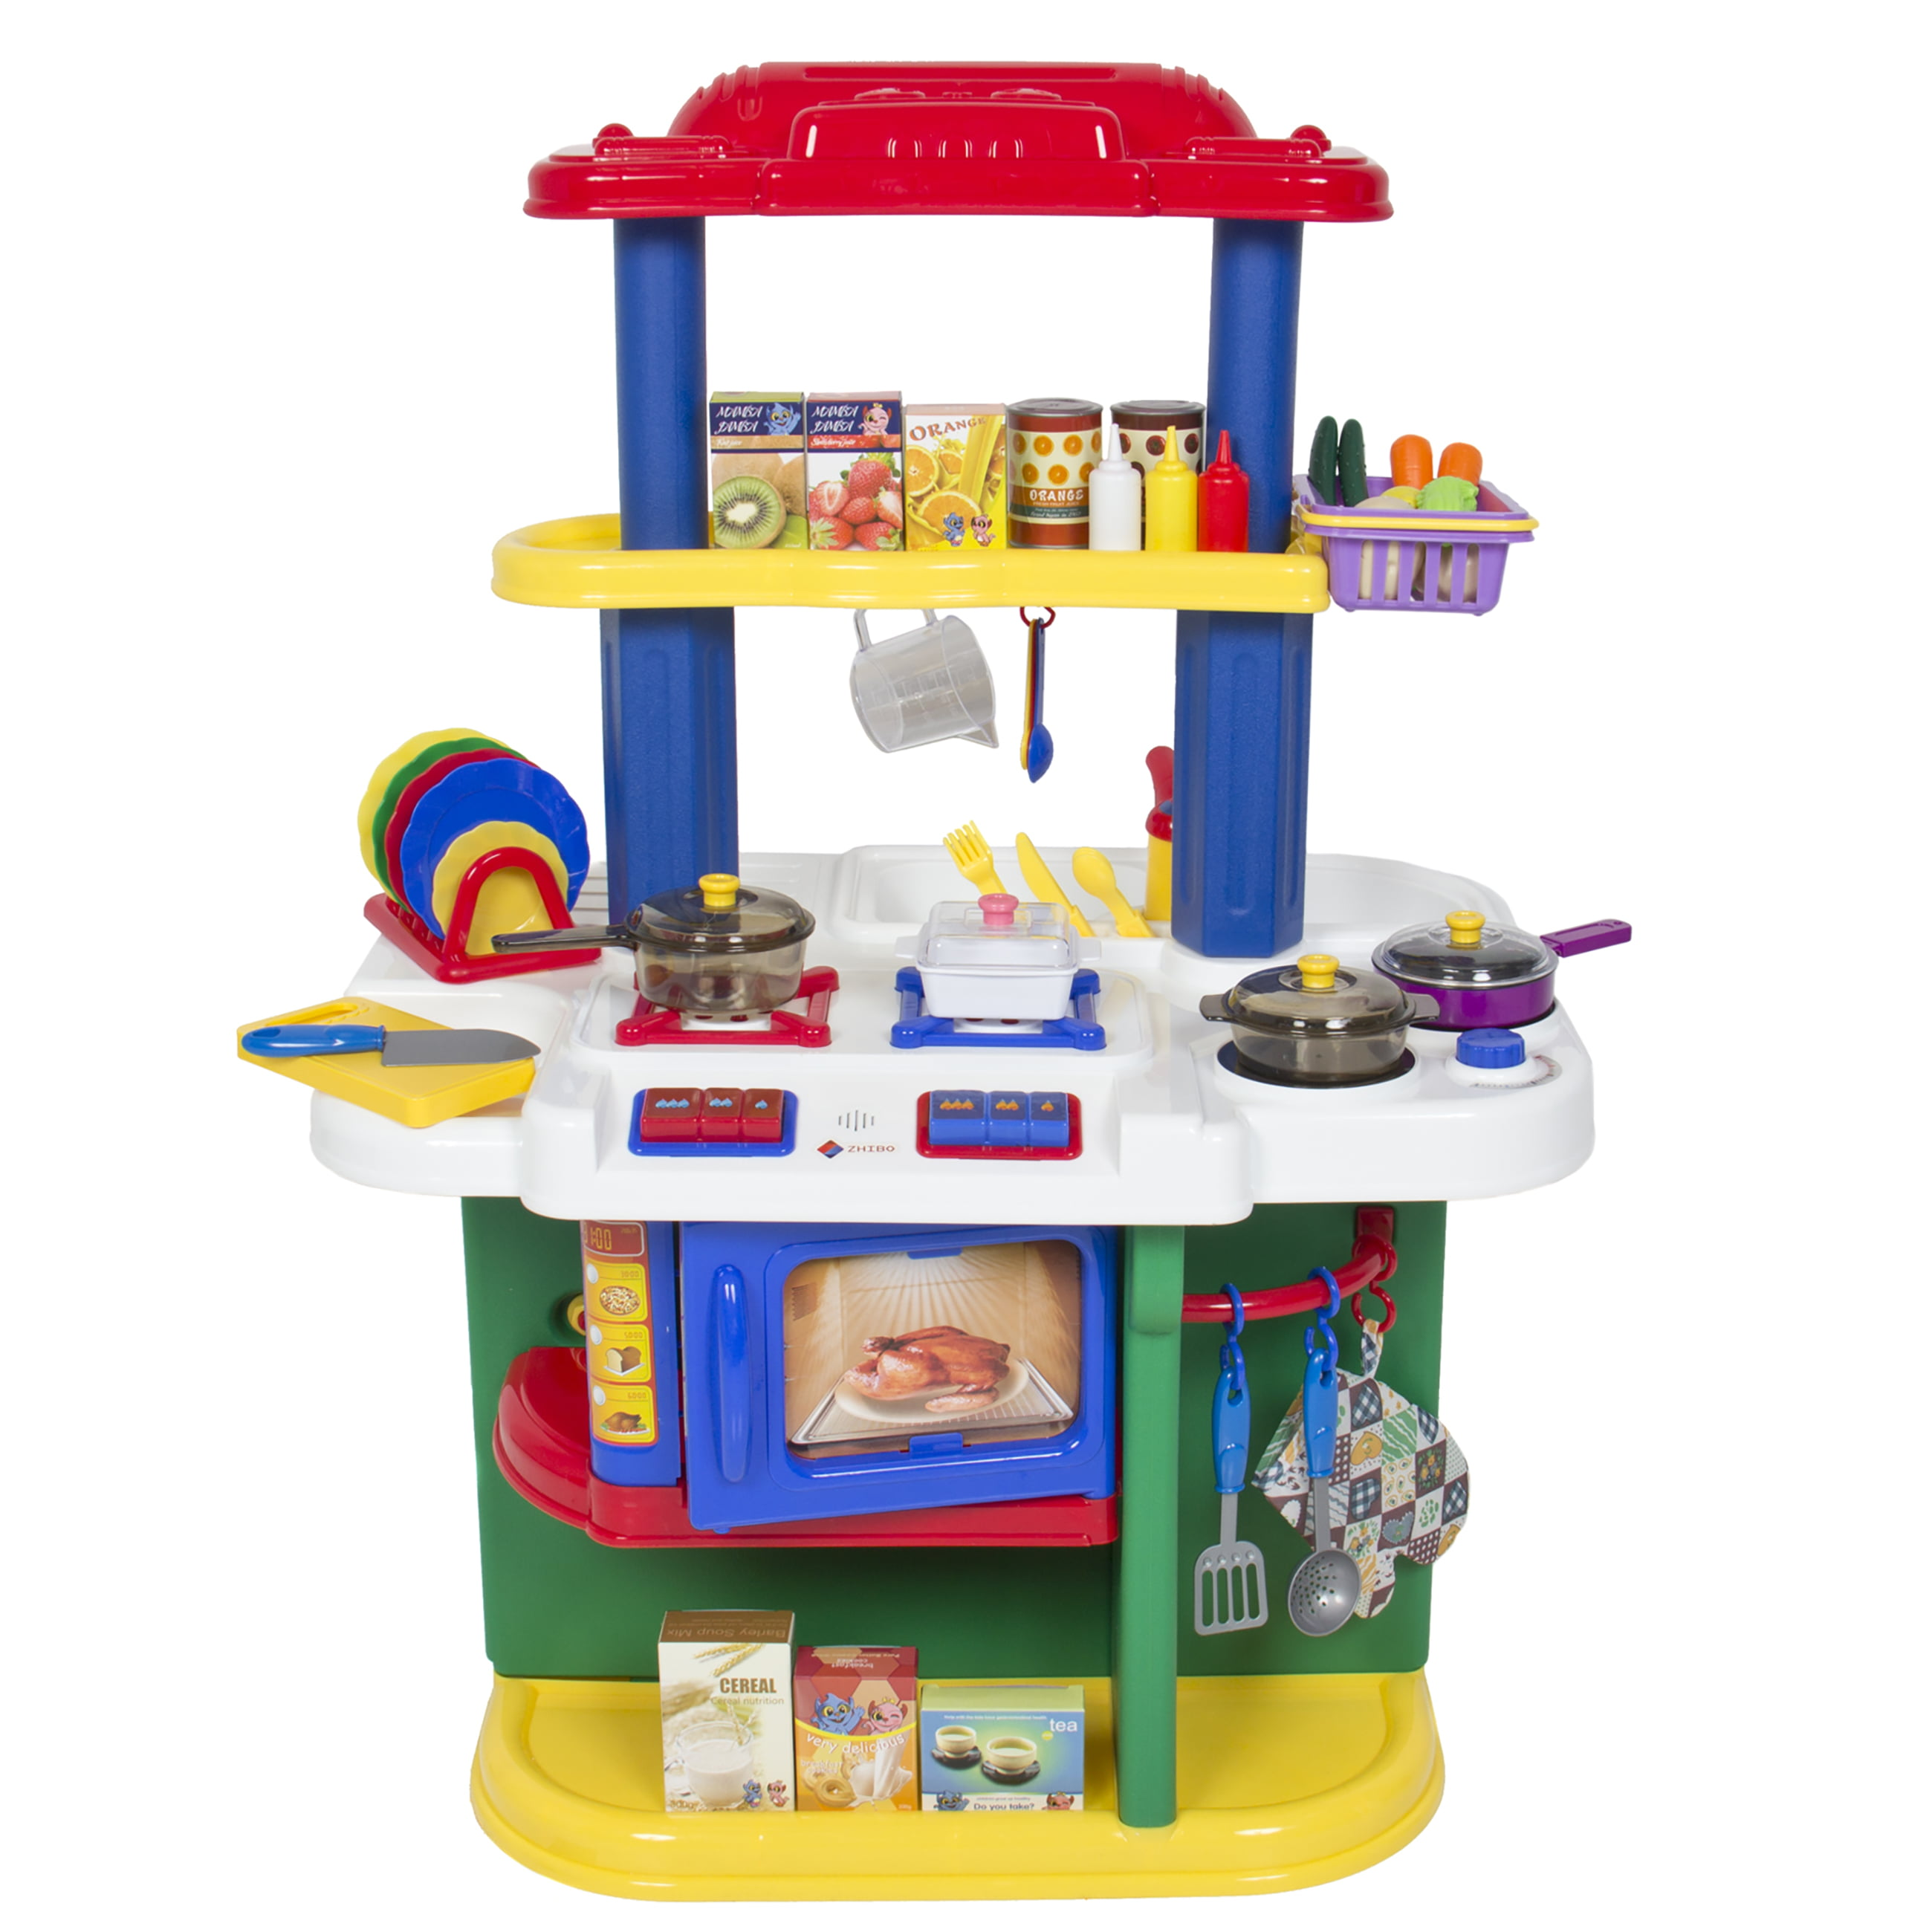 Plastic Play Kitchen Step 2 emejing kitchen play set photos - interior design ideas